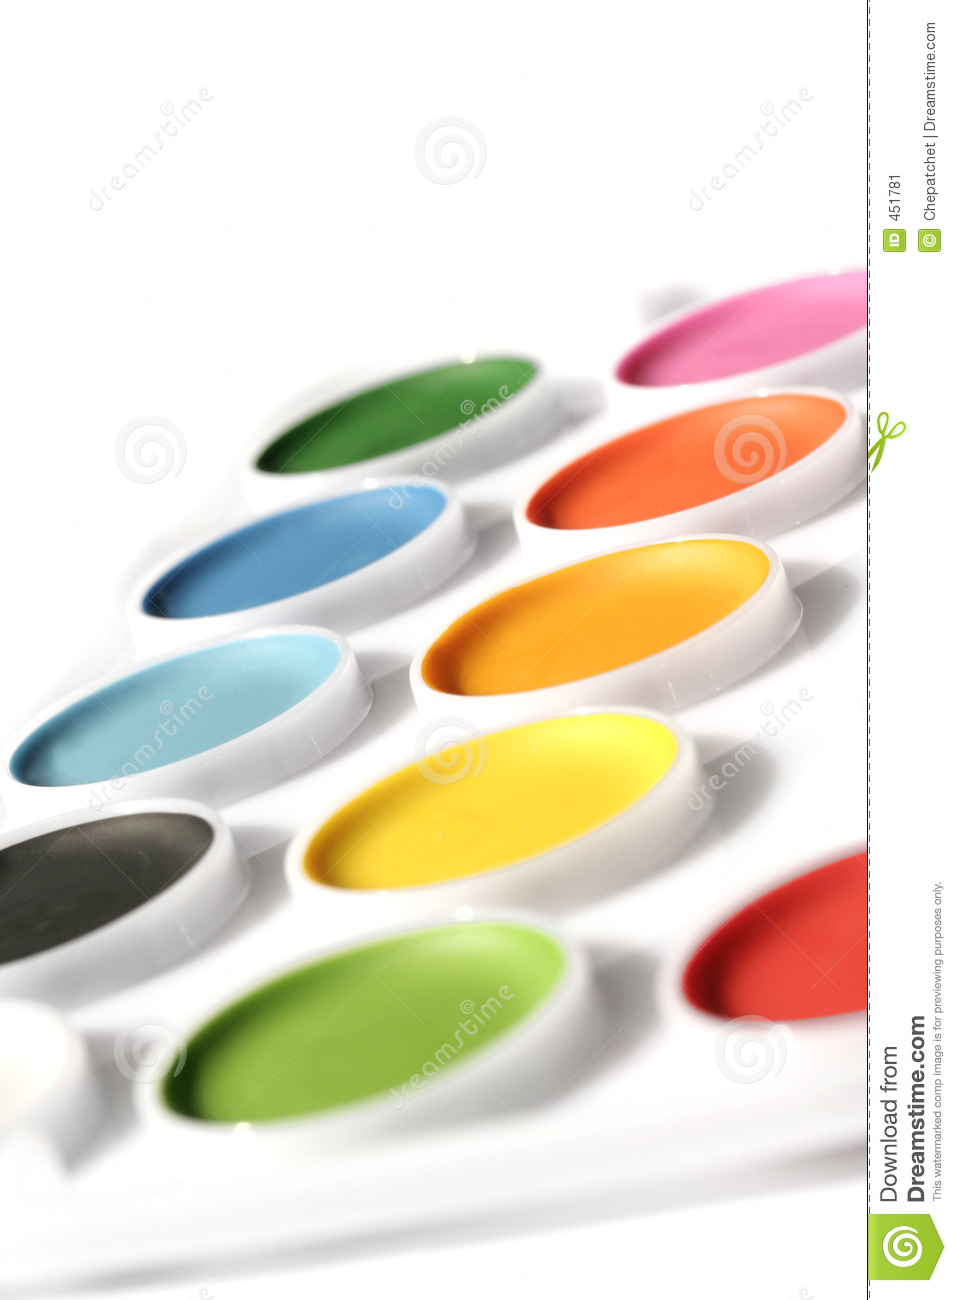 Download Watercolor stock image. Image of variety, paints, crafts - 451781